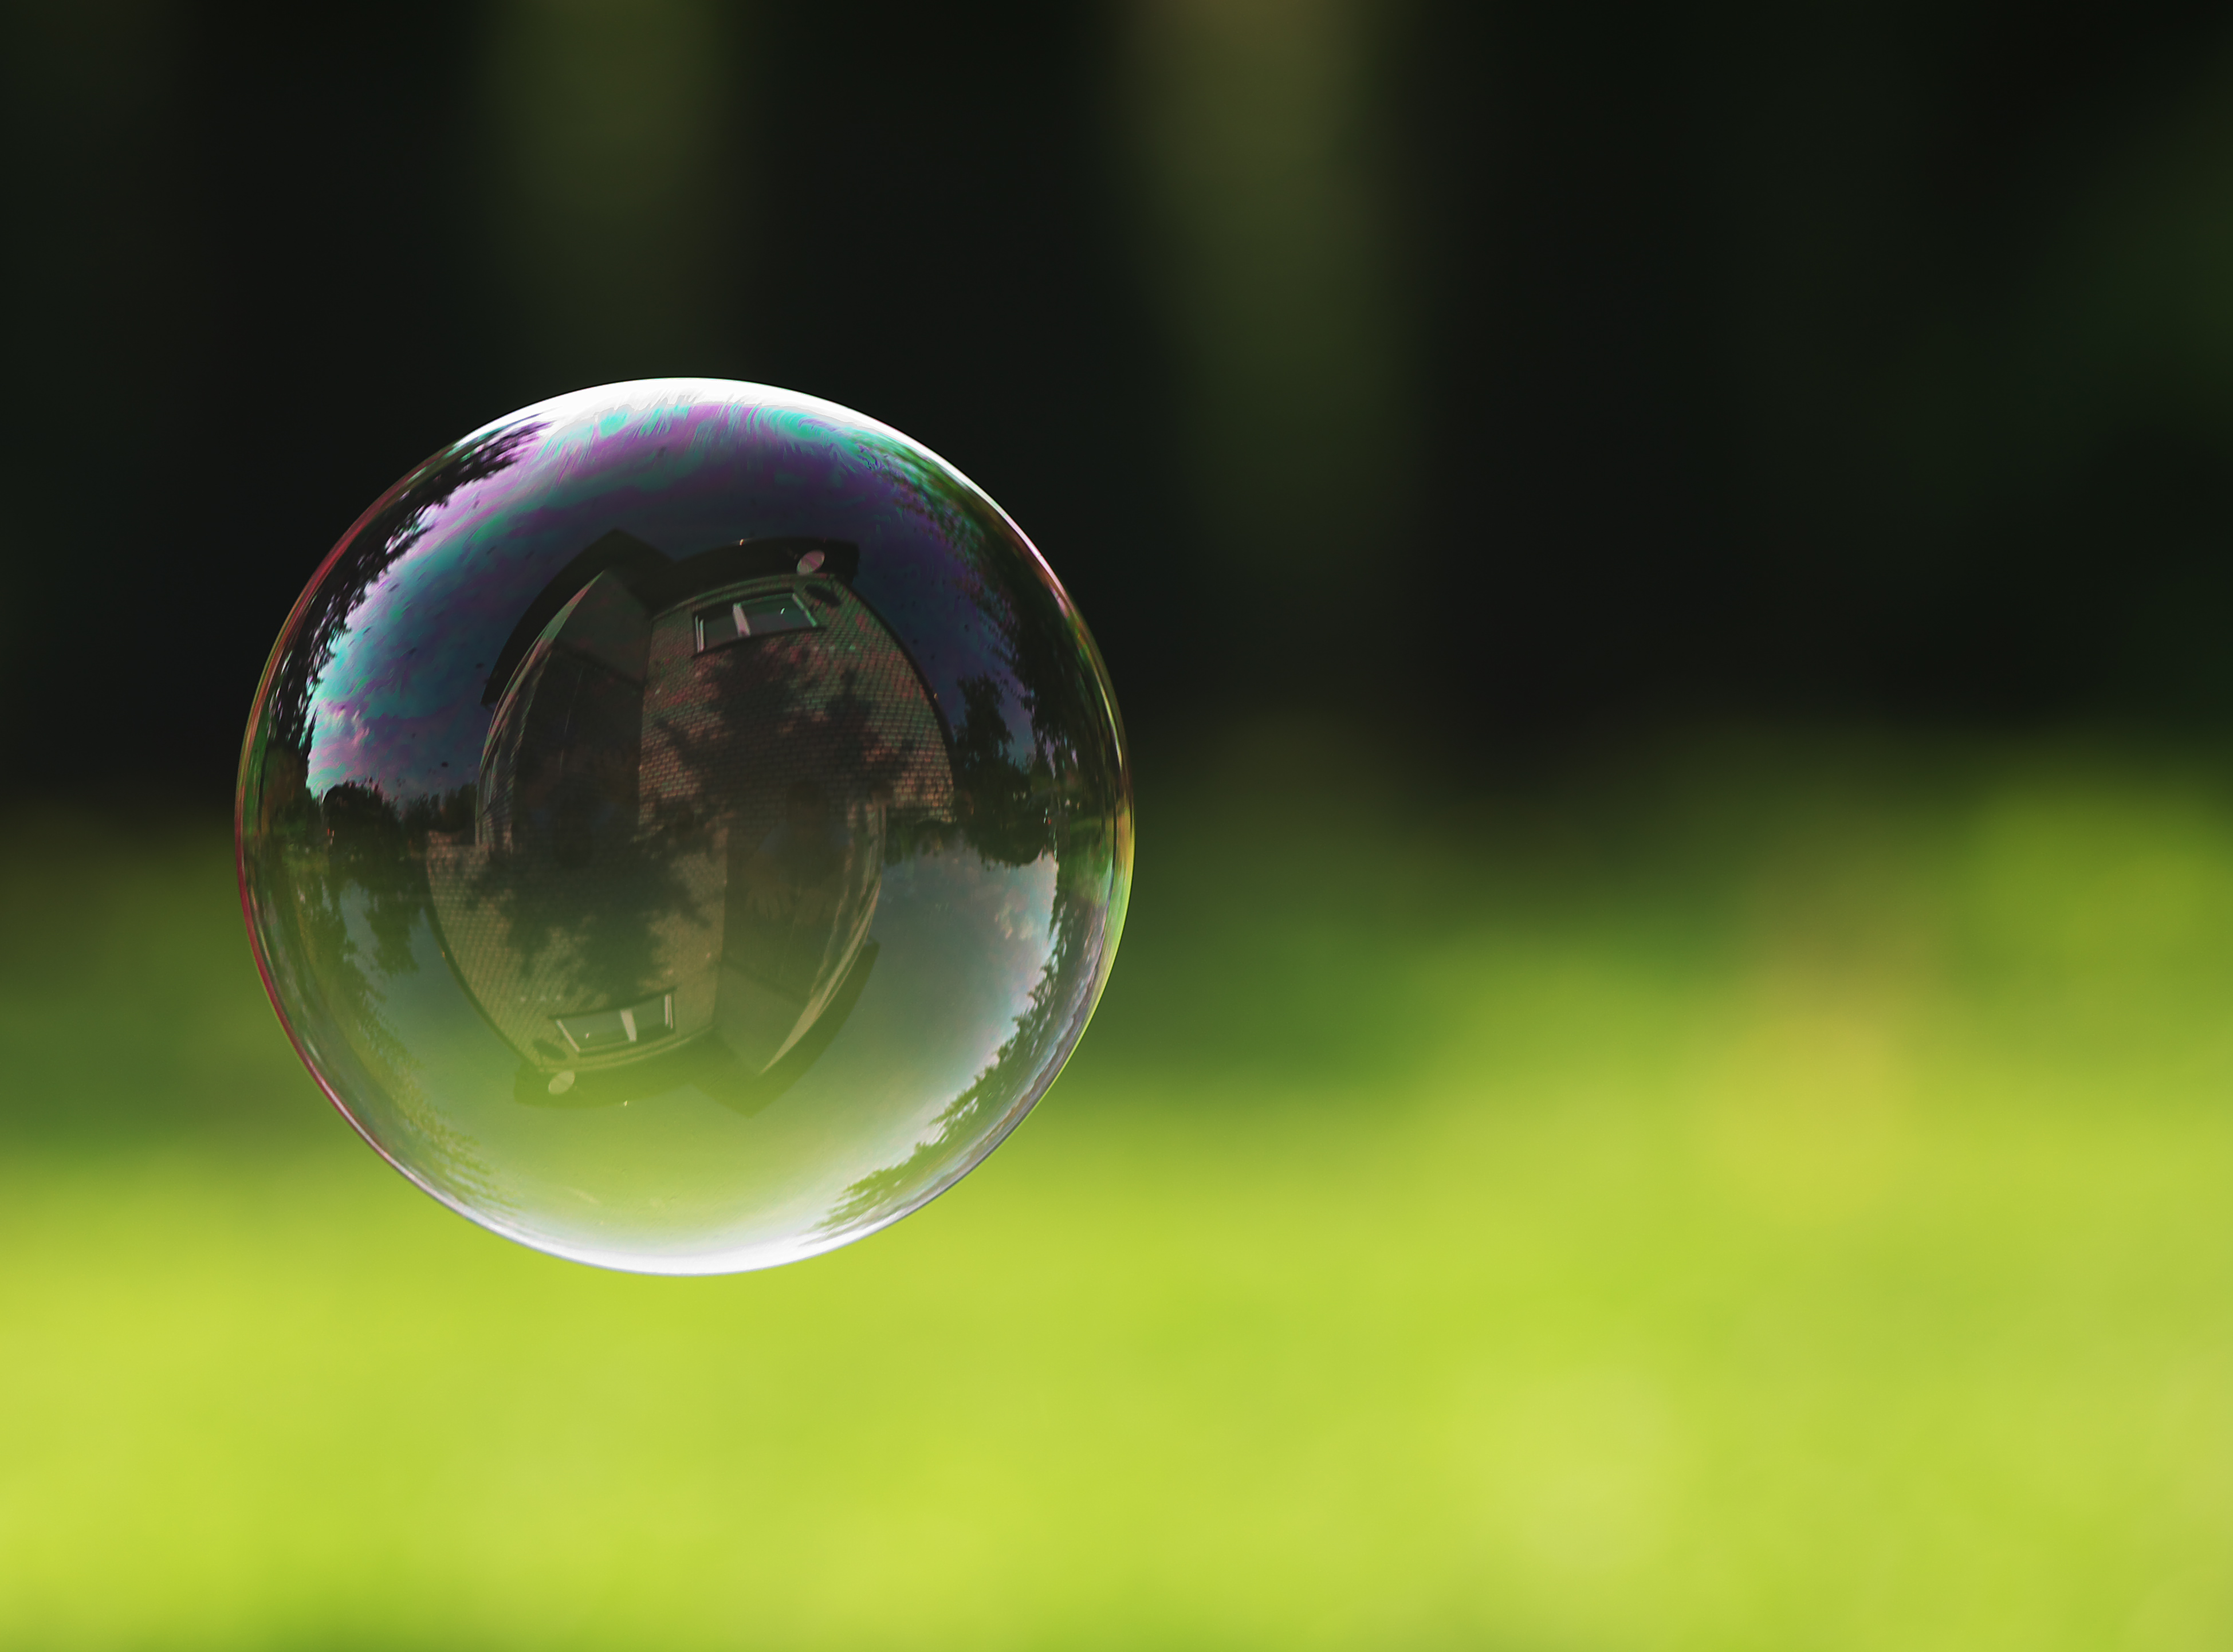 Living bubble free, by joy schroeder